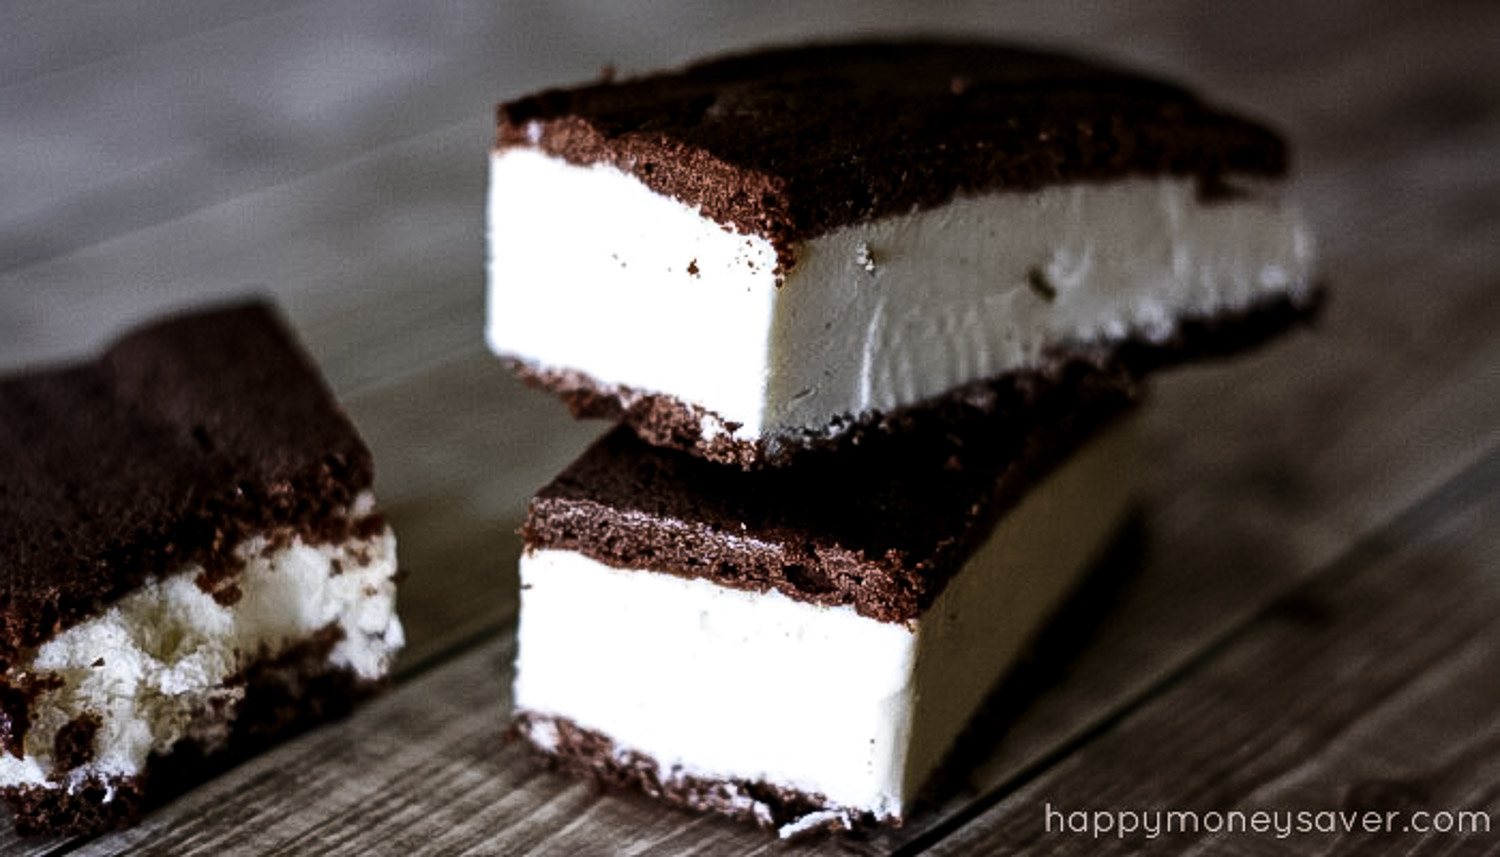 A wood background with three ice cream sandwiches piled on it.